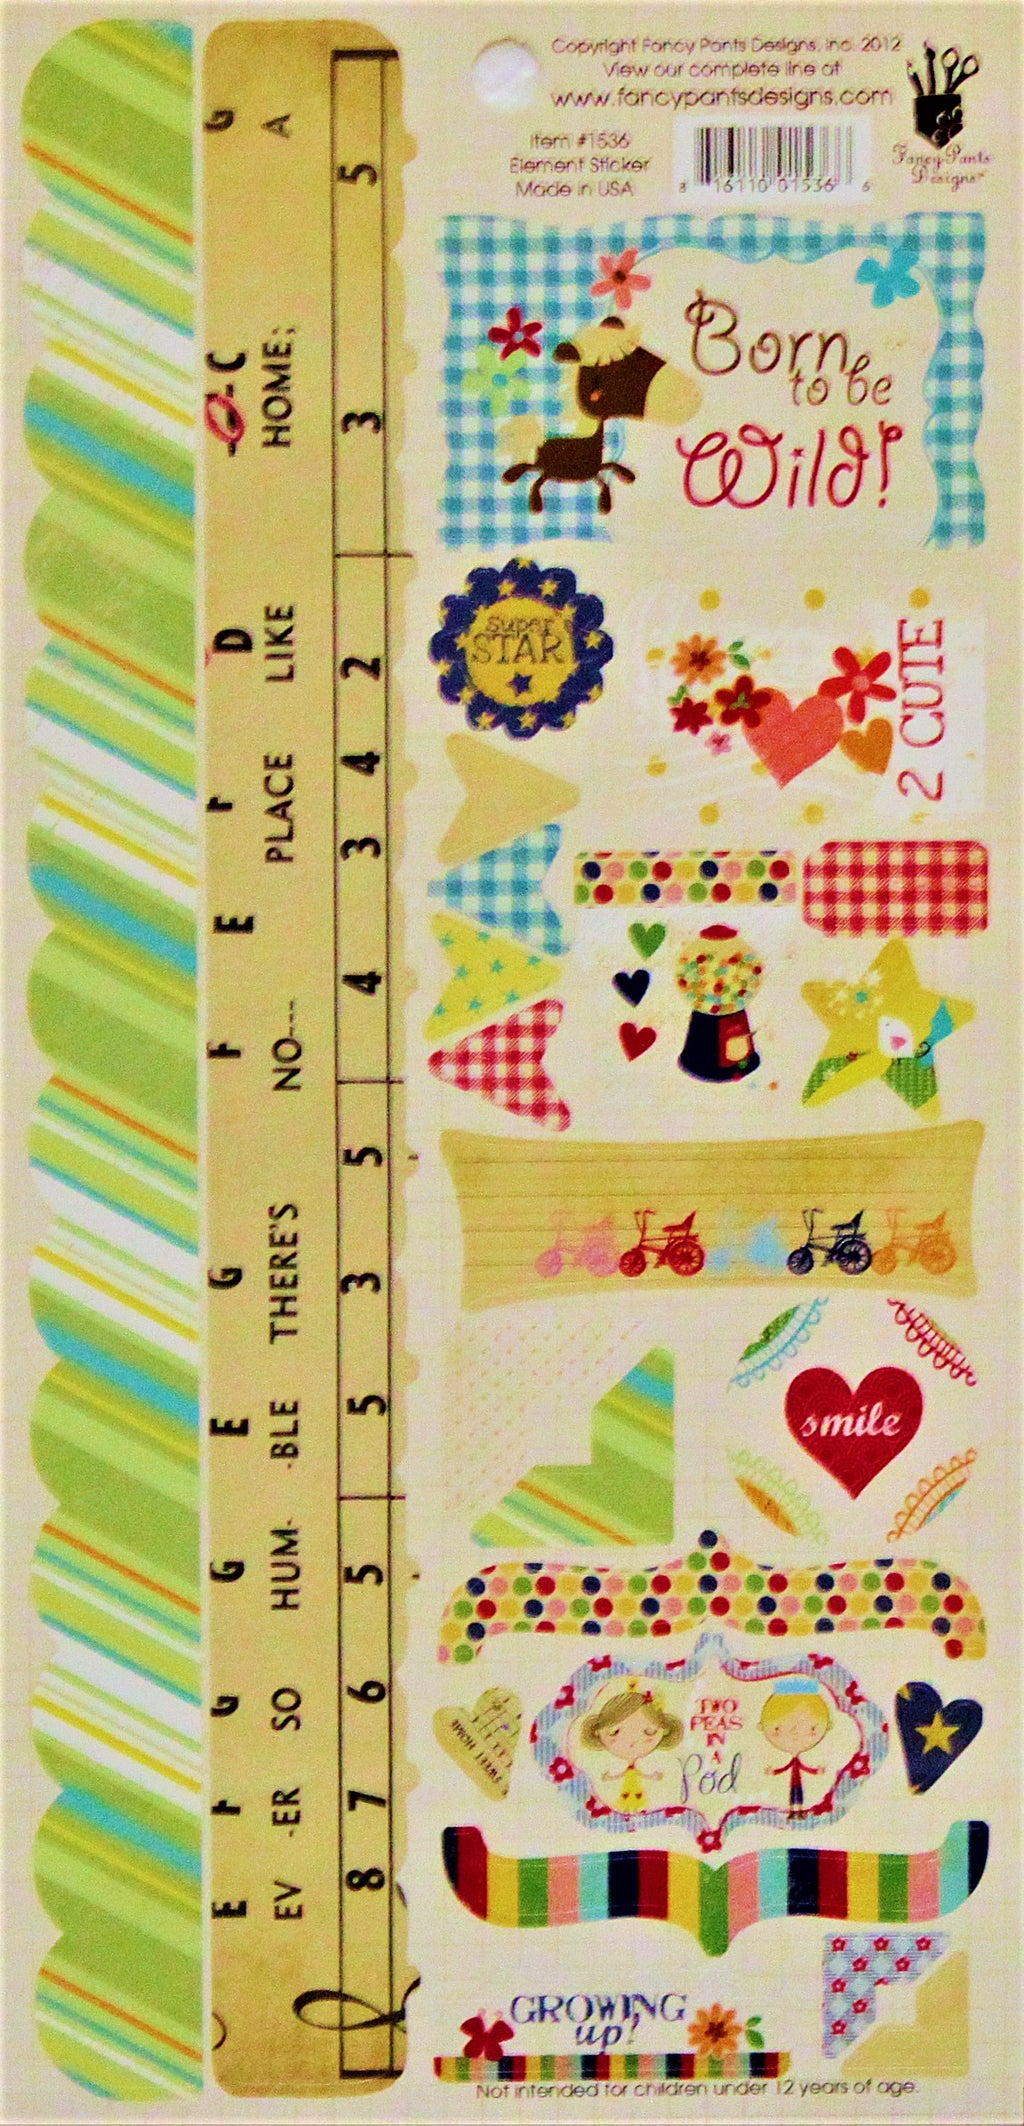 Fancy Pants Designs Growing Up Large Cardstock Sticker Sheet